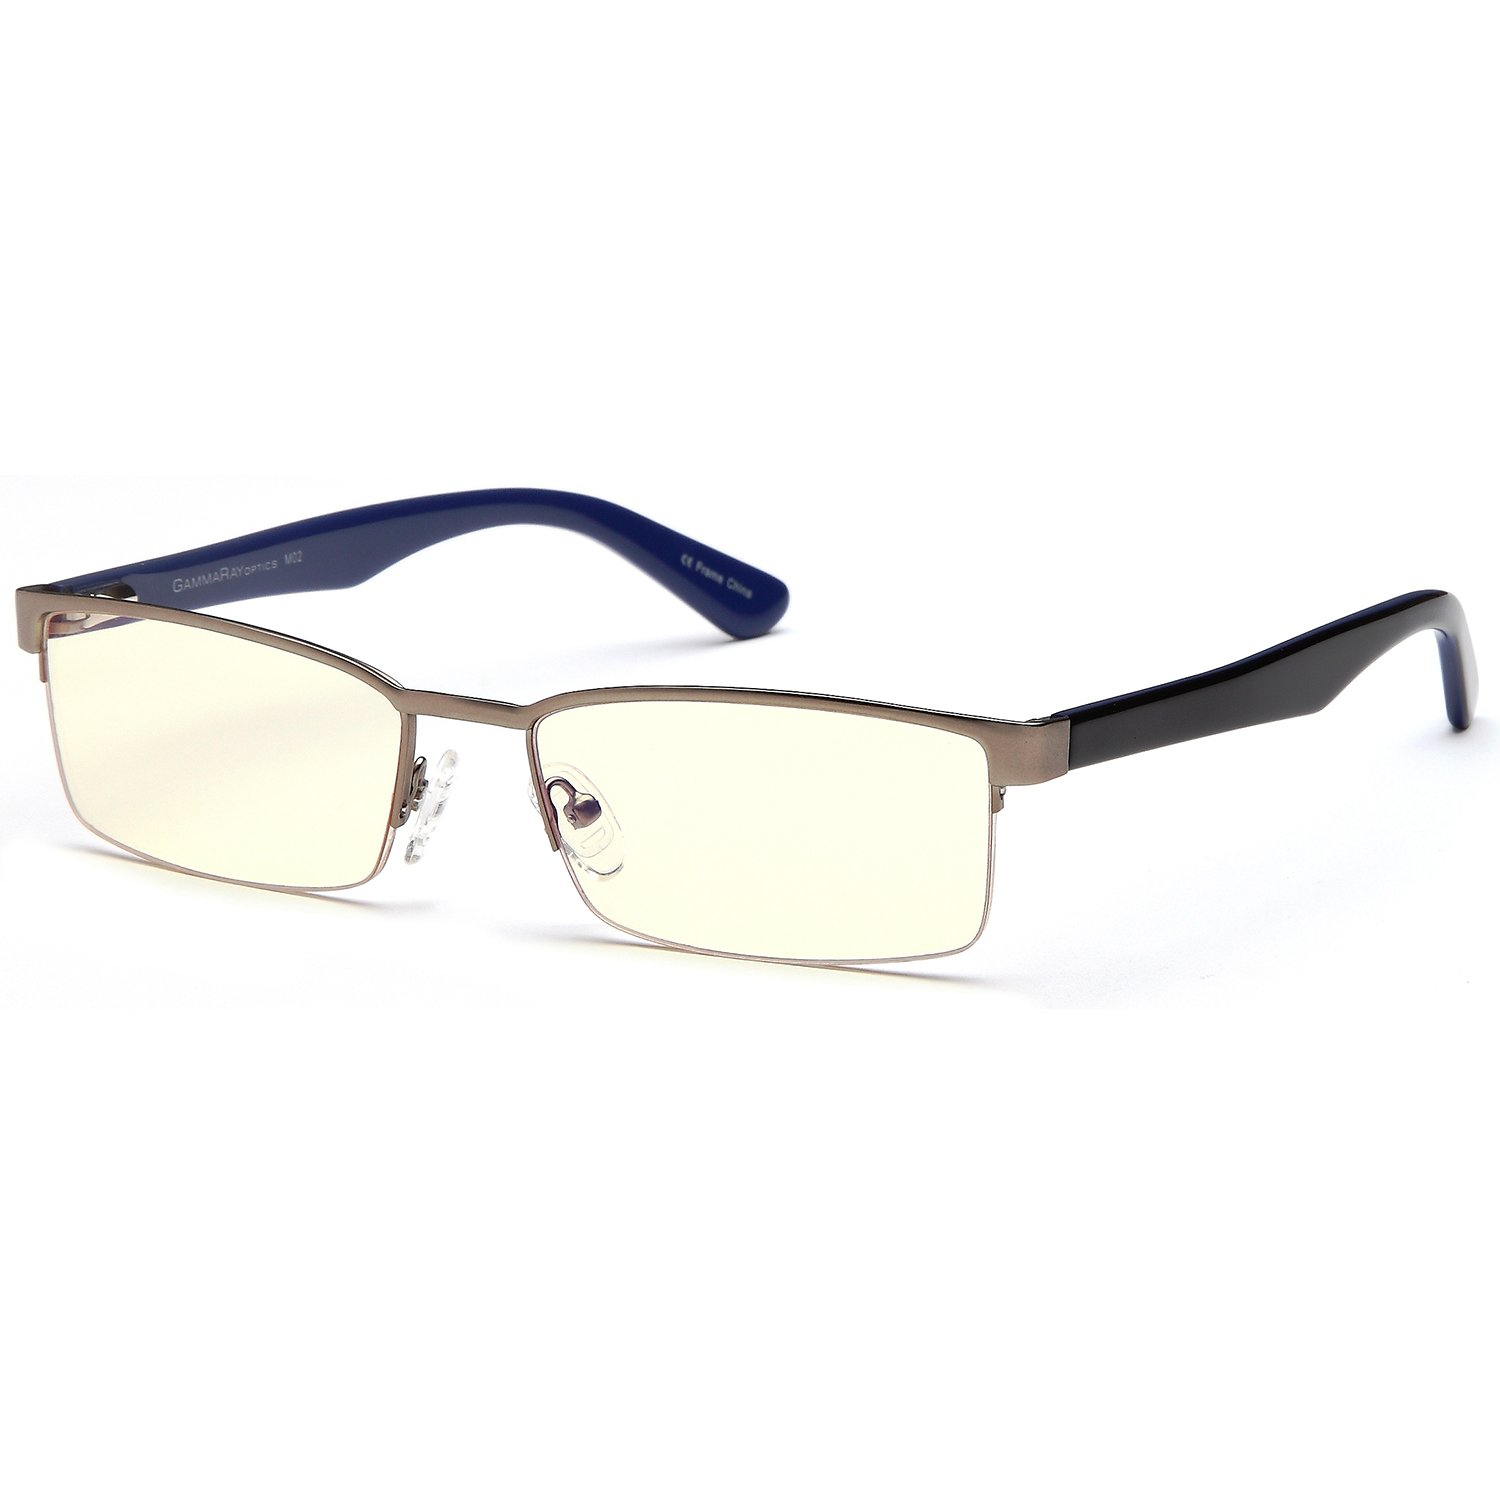 Gamma Ray Blue Light Blocking Glasses - Amber Tin Eye Strain Reducing for TV Gaming Computer Glasses - Filters Harmful Blue Light - No Magnification Amber Tinted Lens Video Gaming Glasses